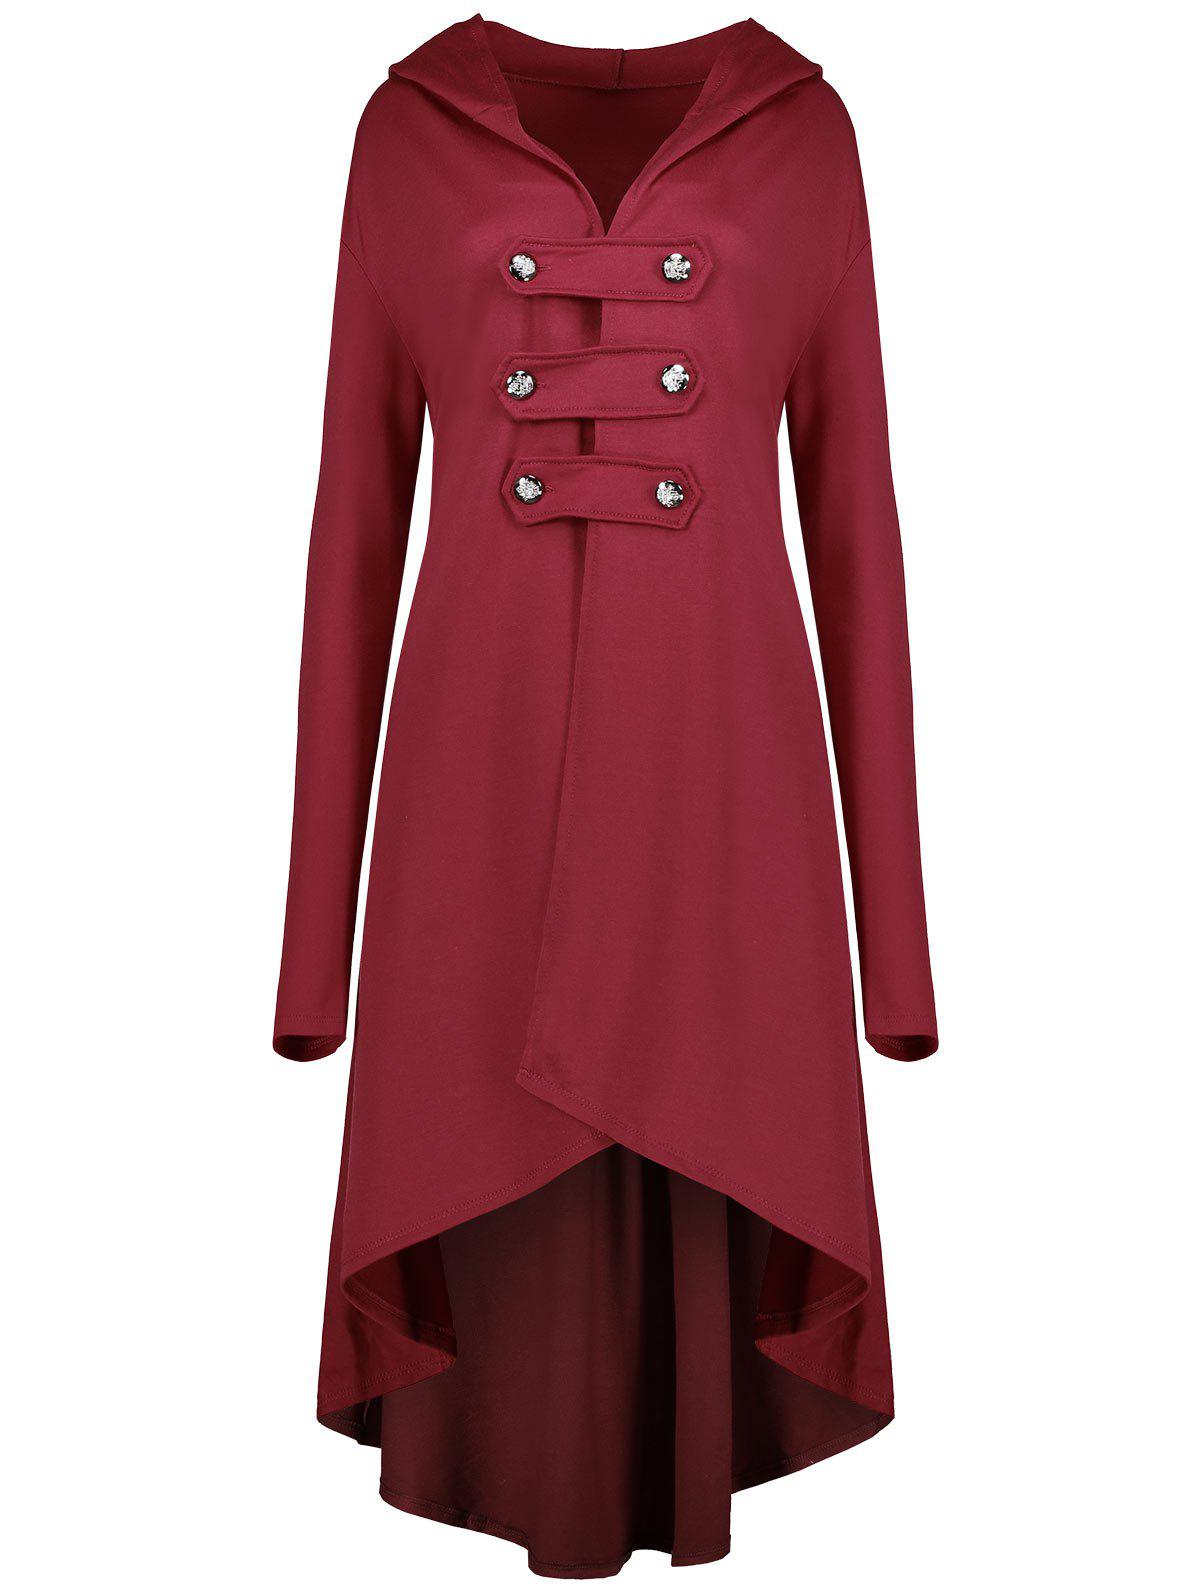 Plus Size Double Breast Swing High Low Hooded  CoatWOMEN<br><br>Size: 4XL; Color: RED; Clothes Type: Trench; Material: Cotton Blends,Polyester; Type: Asymmetric Length; Shirt Length: Long; Sleeve Length: Full; Collar: Hooded; Closure Type: Double Breasted; Pattern Type: Solid; Embellishment: Button; Style: Fashion; Season: Fall,Winter; Weight: 0.6500kg; Package Contents: 1 x Coat;